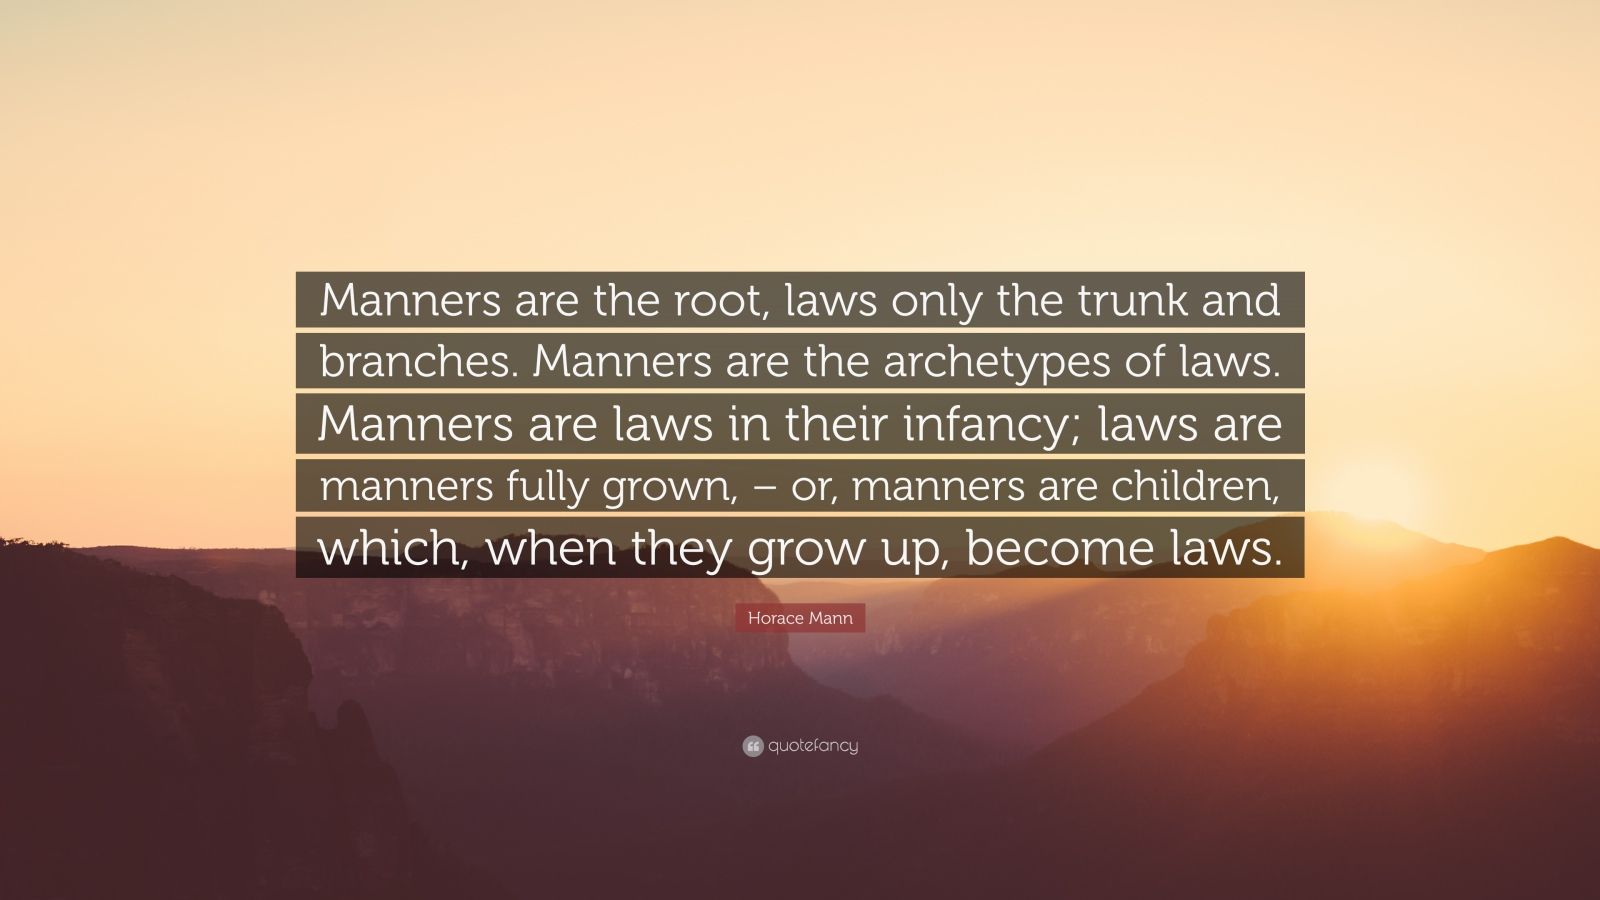 """Horace Mann Quote: """"Manners are the root, laws only the trunk and branches. Manners are the archetypes of laws. Manners are laws in their infancy; laws are manners fully grown, – or, manners are children, which, when they grow up, become laws."""""""